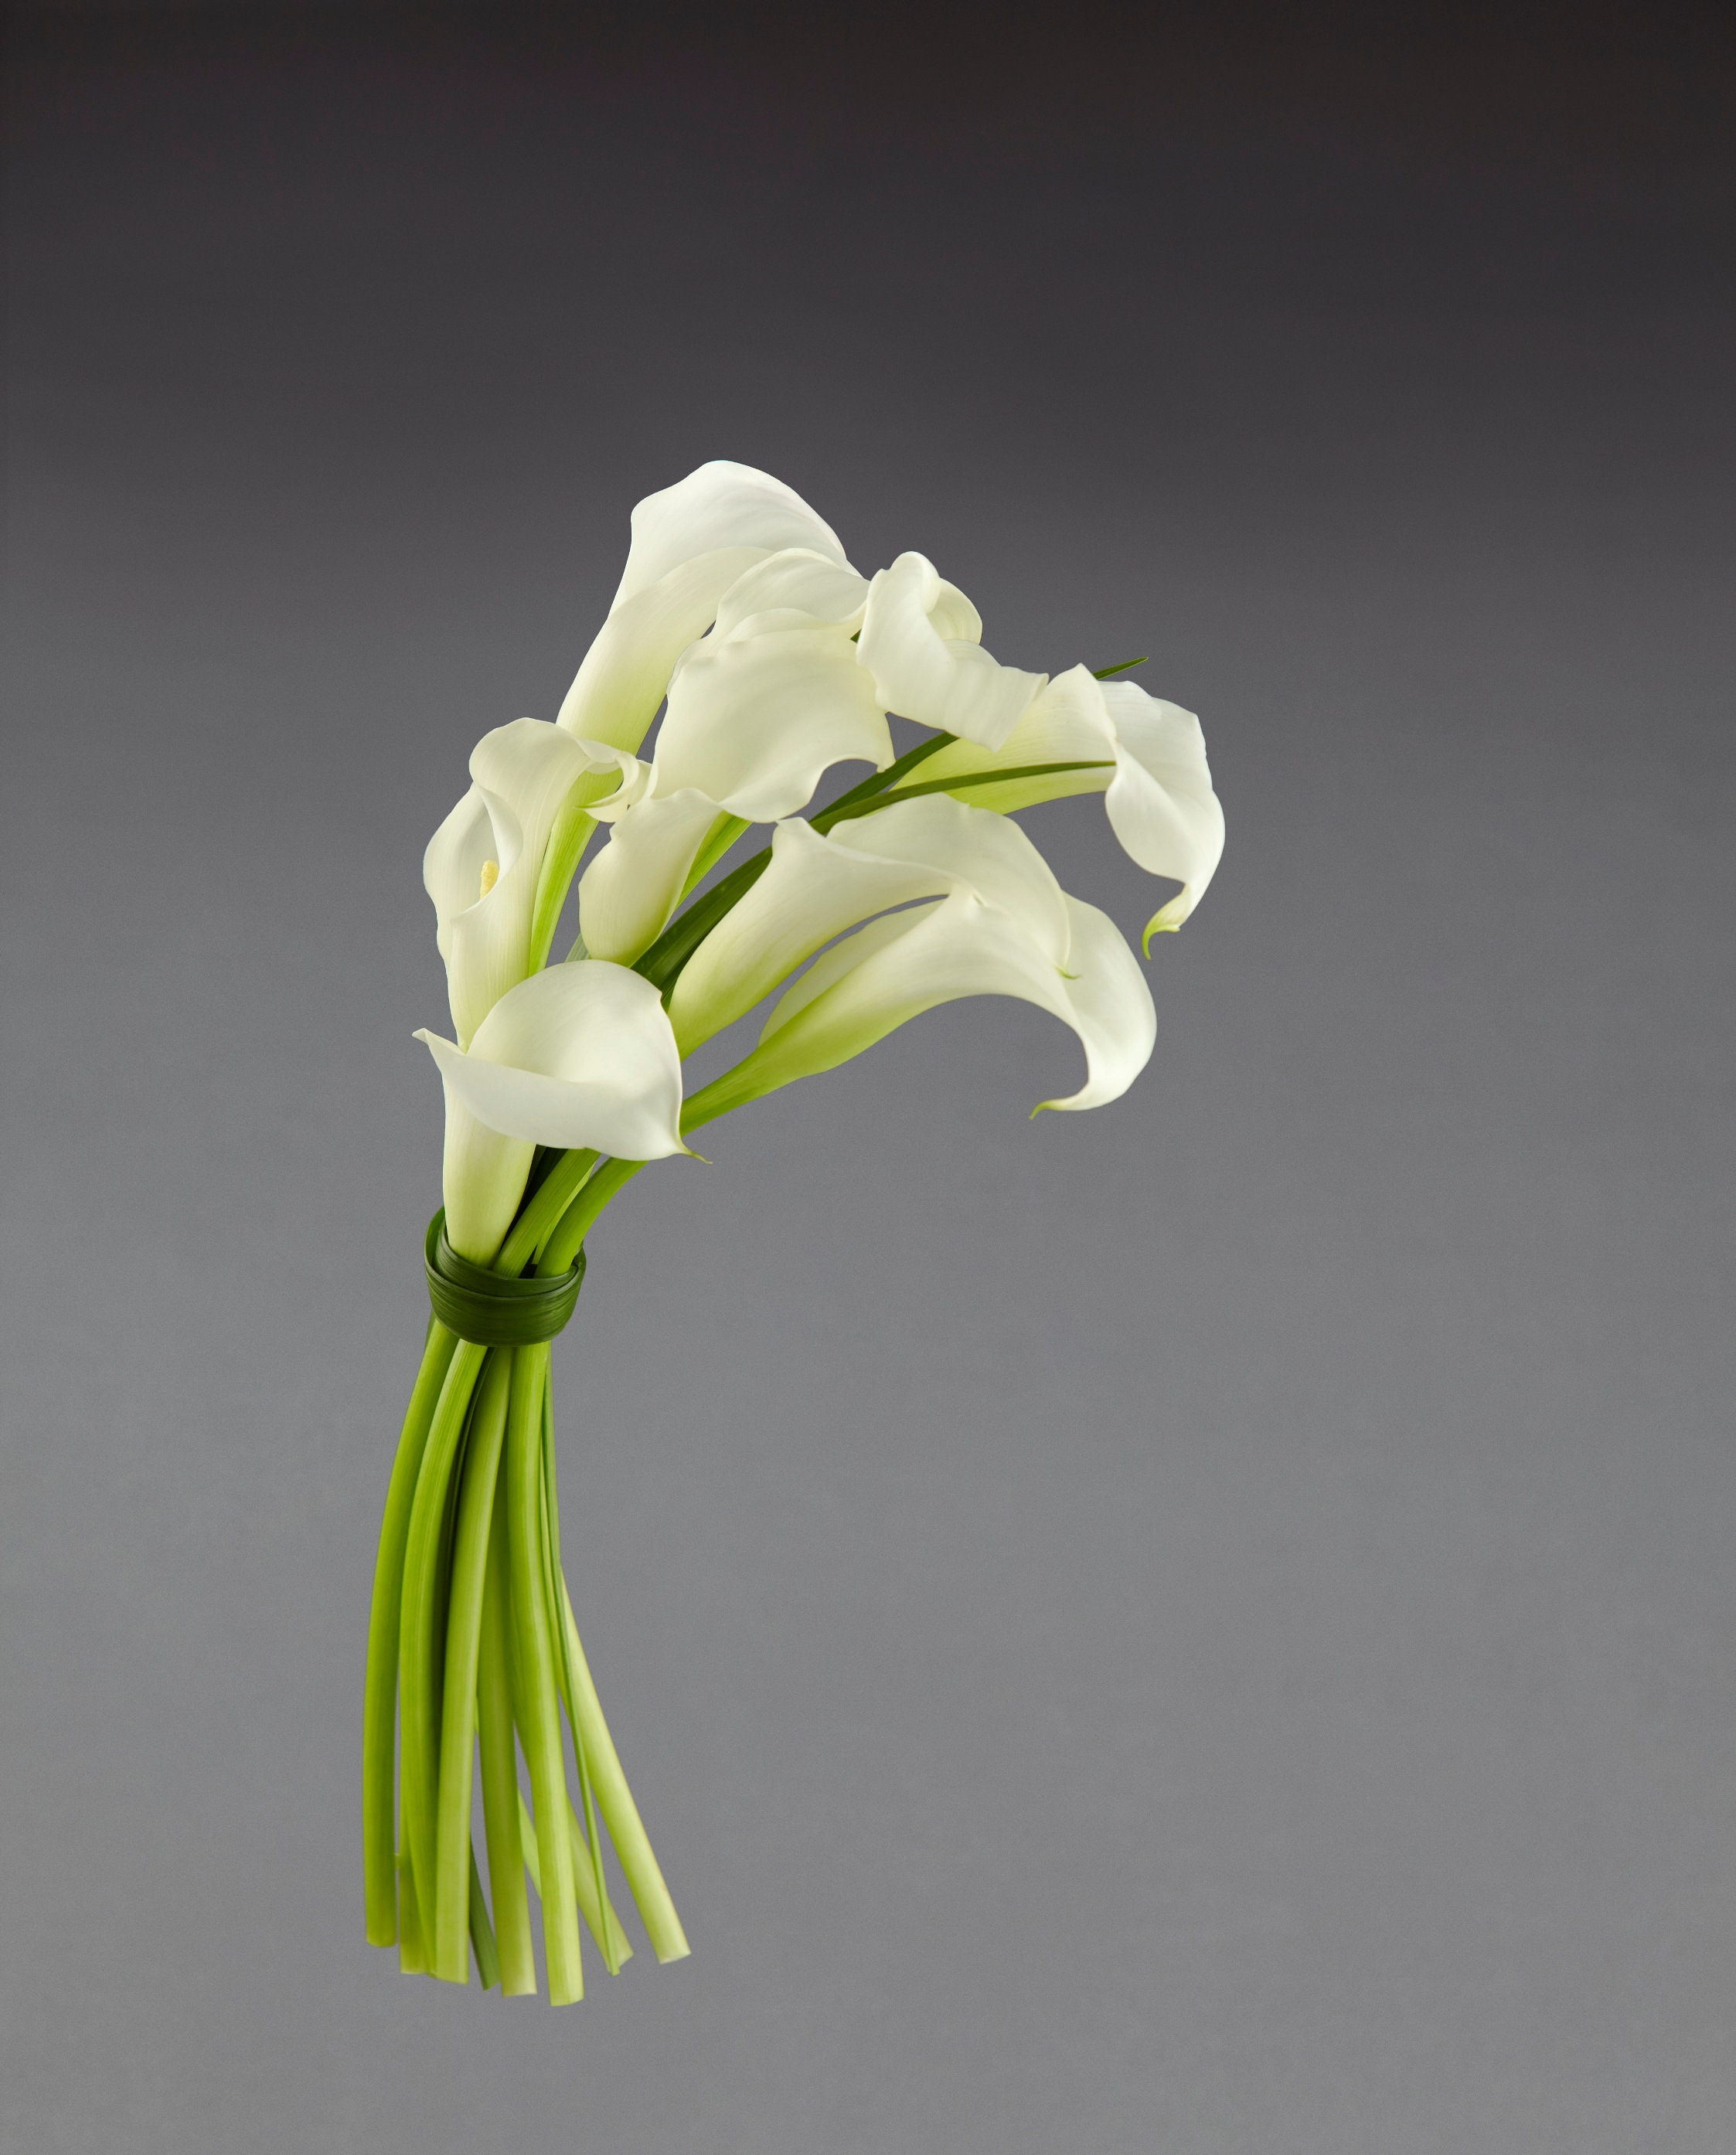 Black Calla Lily  Online Flowers Guide